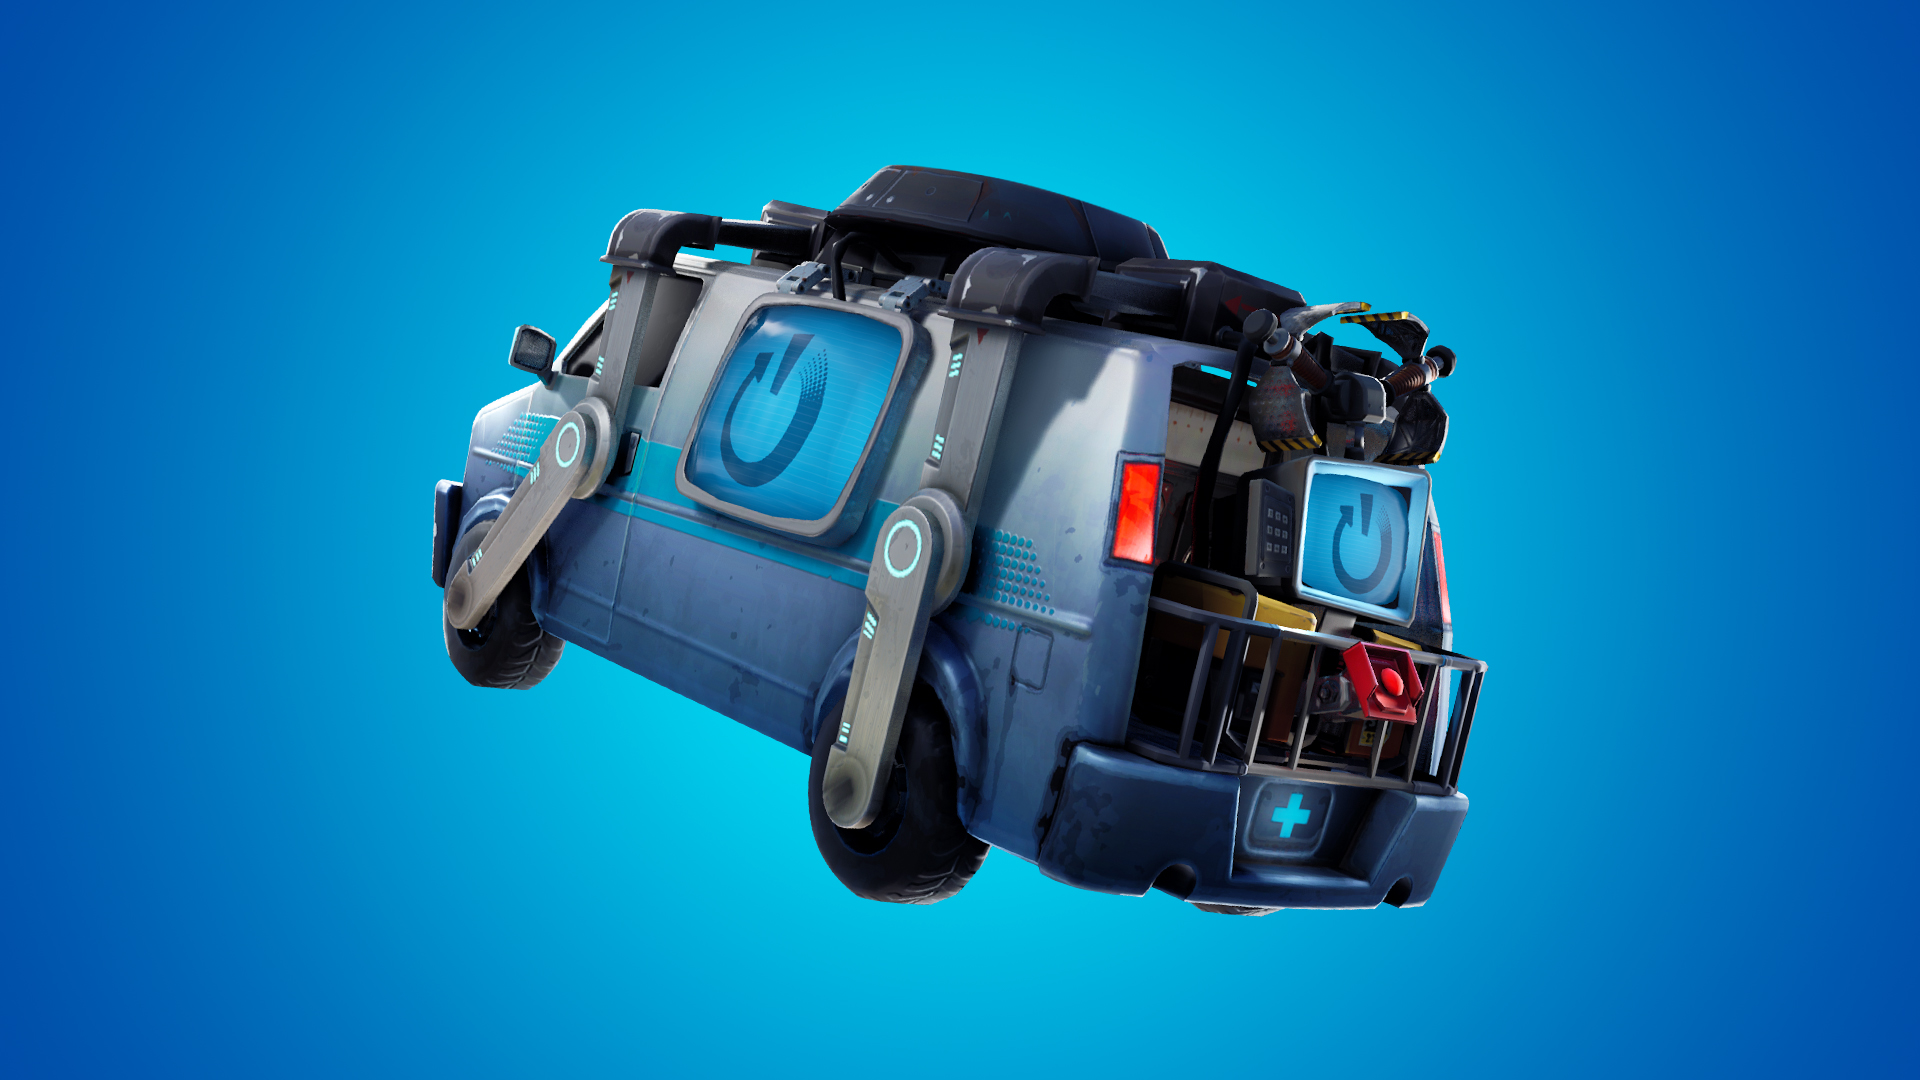 fortnite s v8 30 update patch notes are now live - fortnite account inventory slots